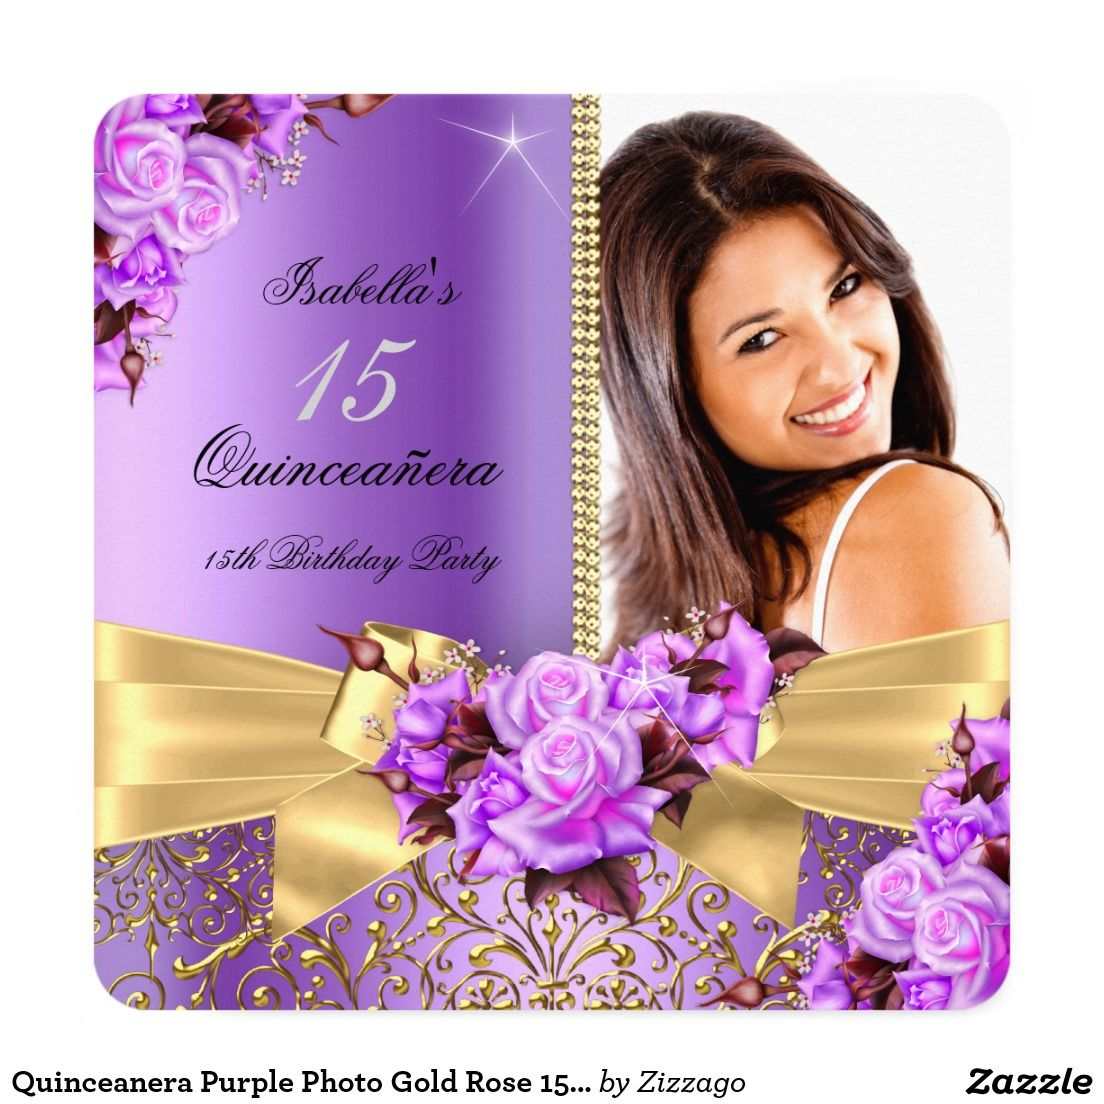 Quinceanera purple photo gold rose 15th birthday card 15th quinceanera purple photo gold rose 15th birthday card bookmarktalkfo Gallery